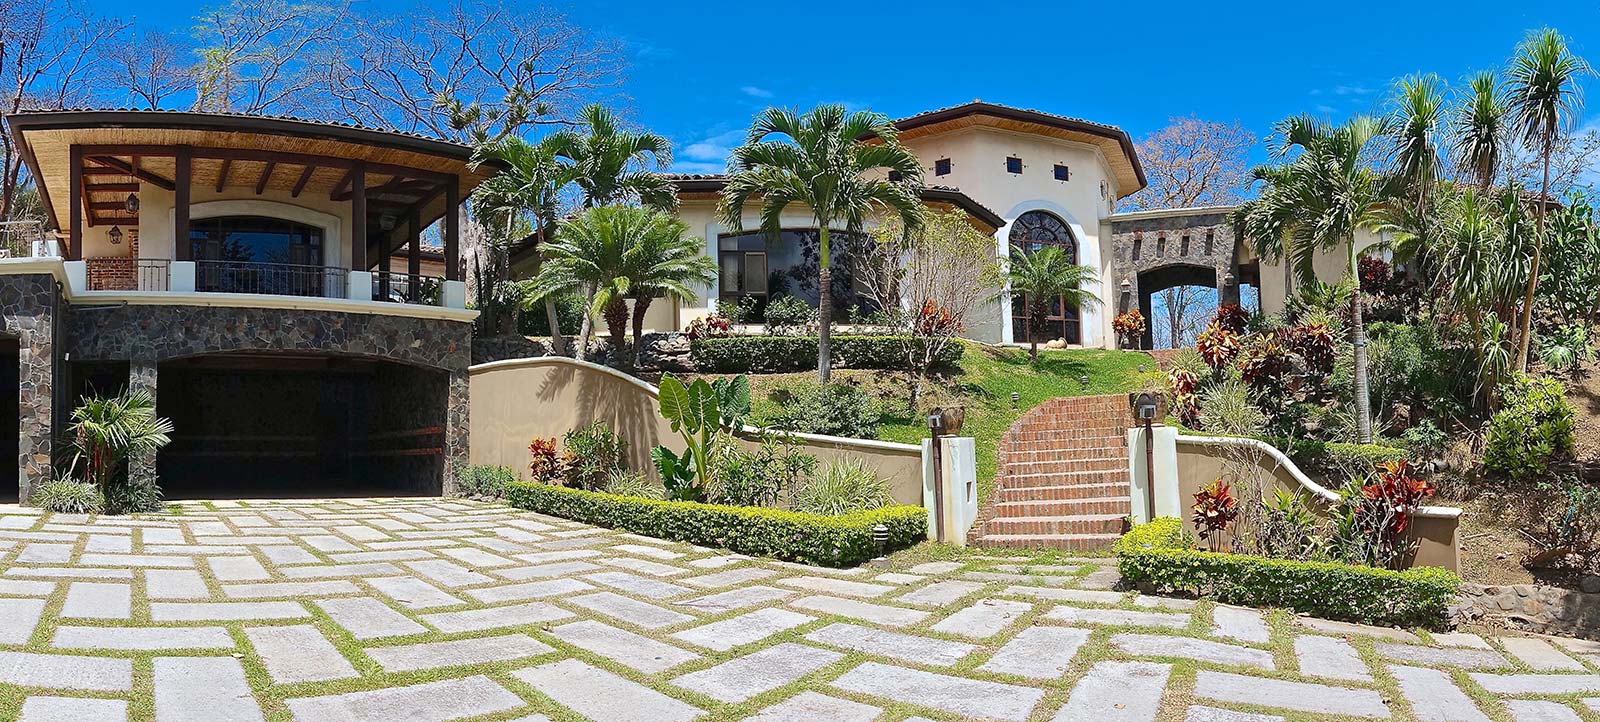 Costa rica luxury estate for sale at 50 cents on the for Costa rica luxury homes for sale